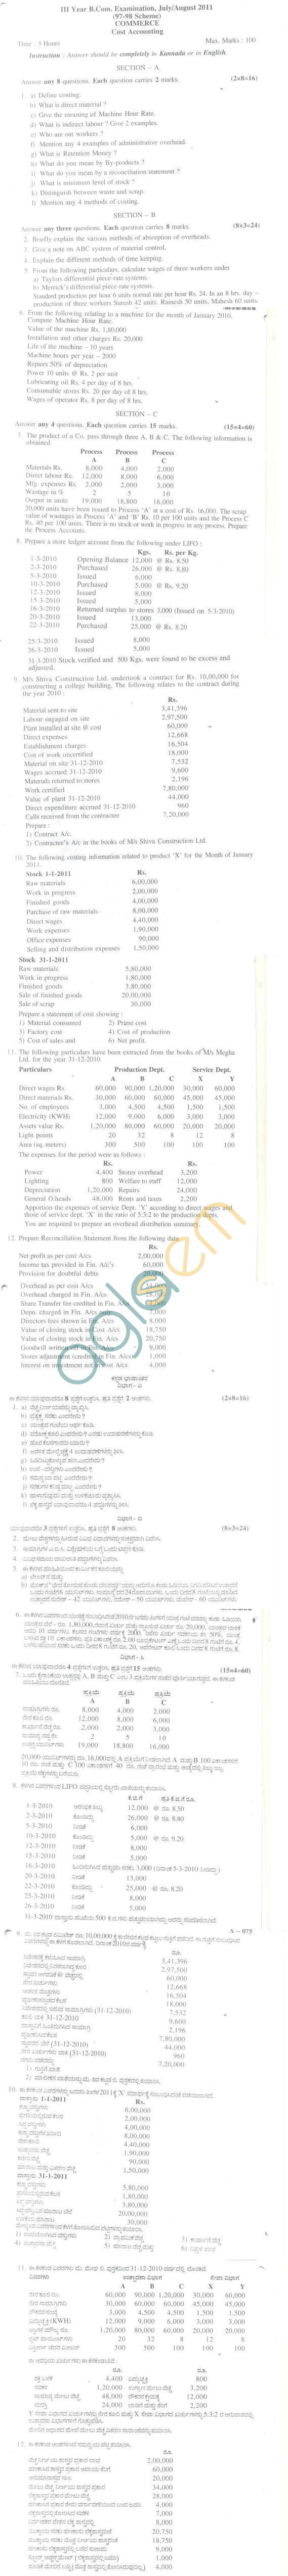 Bangalore University Question Paper July/August 2011 III Year B.Com. Examination - Commerce, Cost Accounting